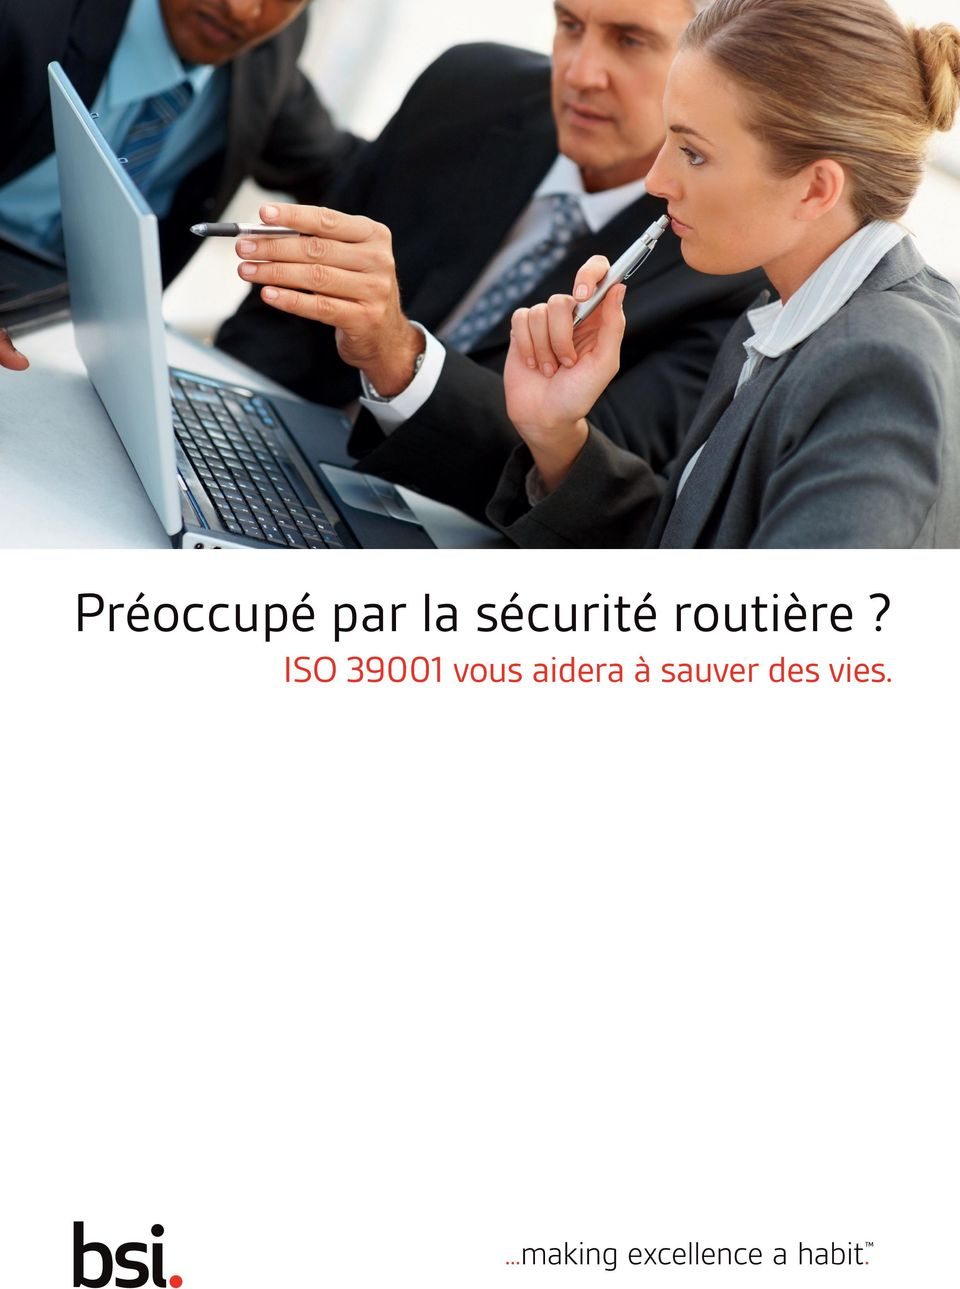 ISO 39001 vous